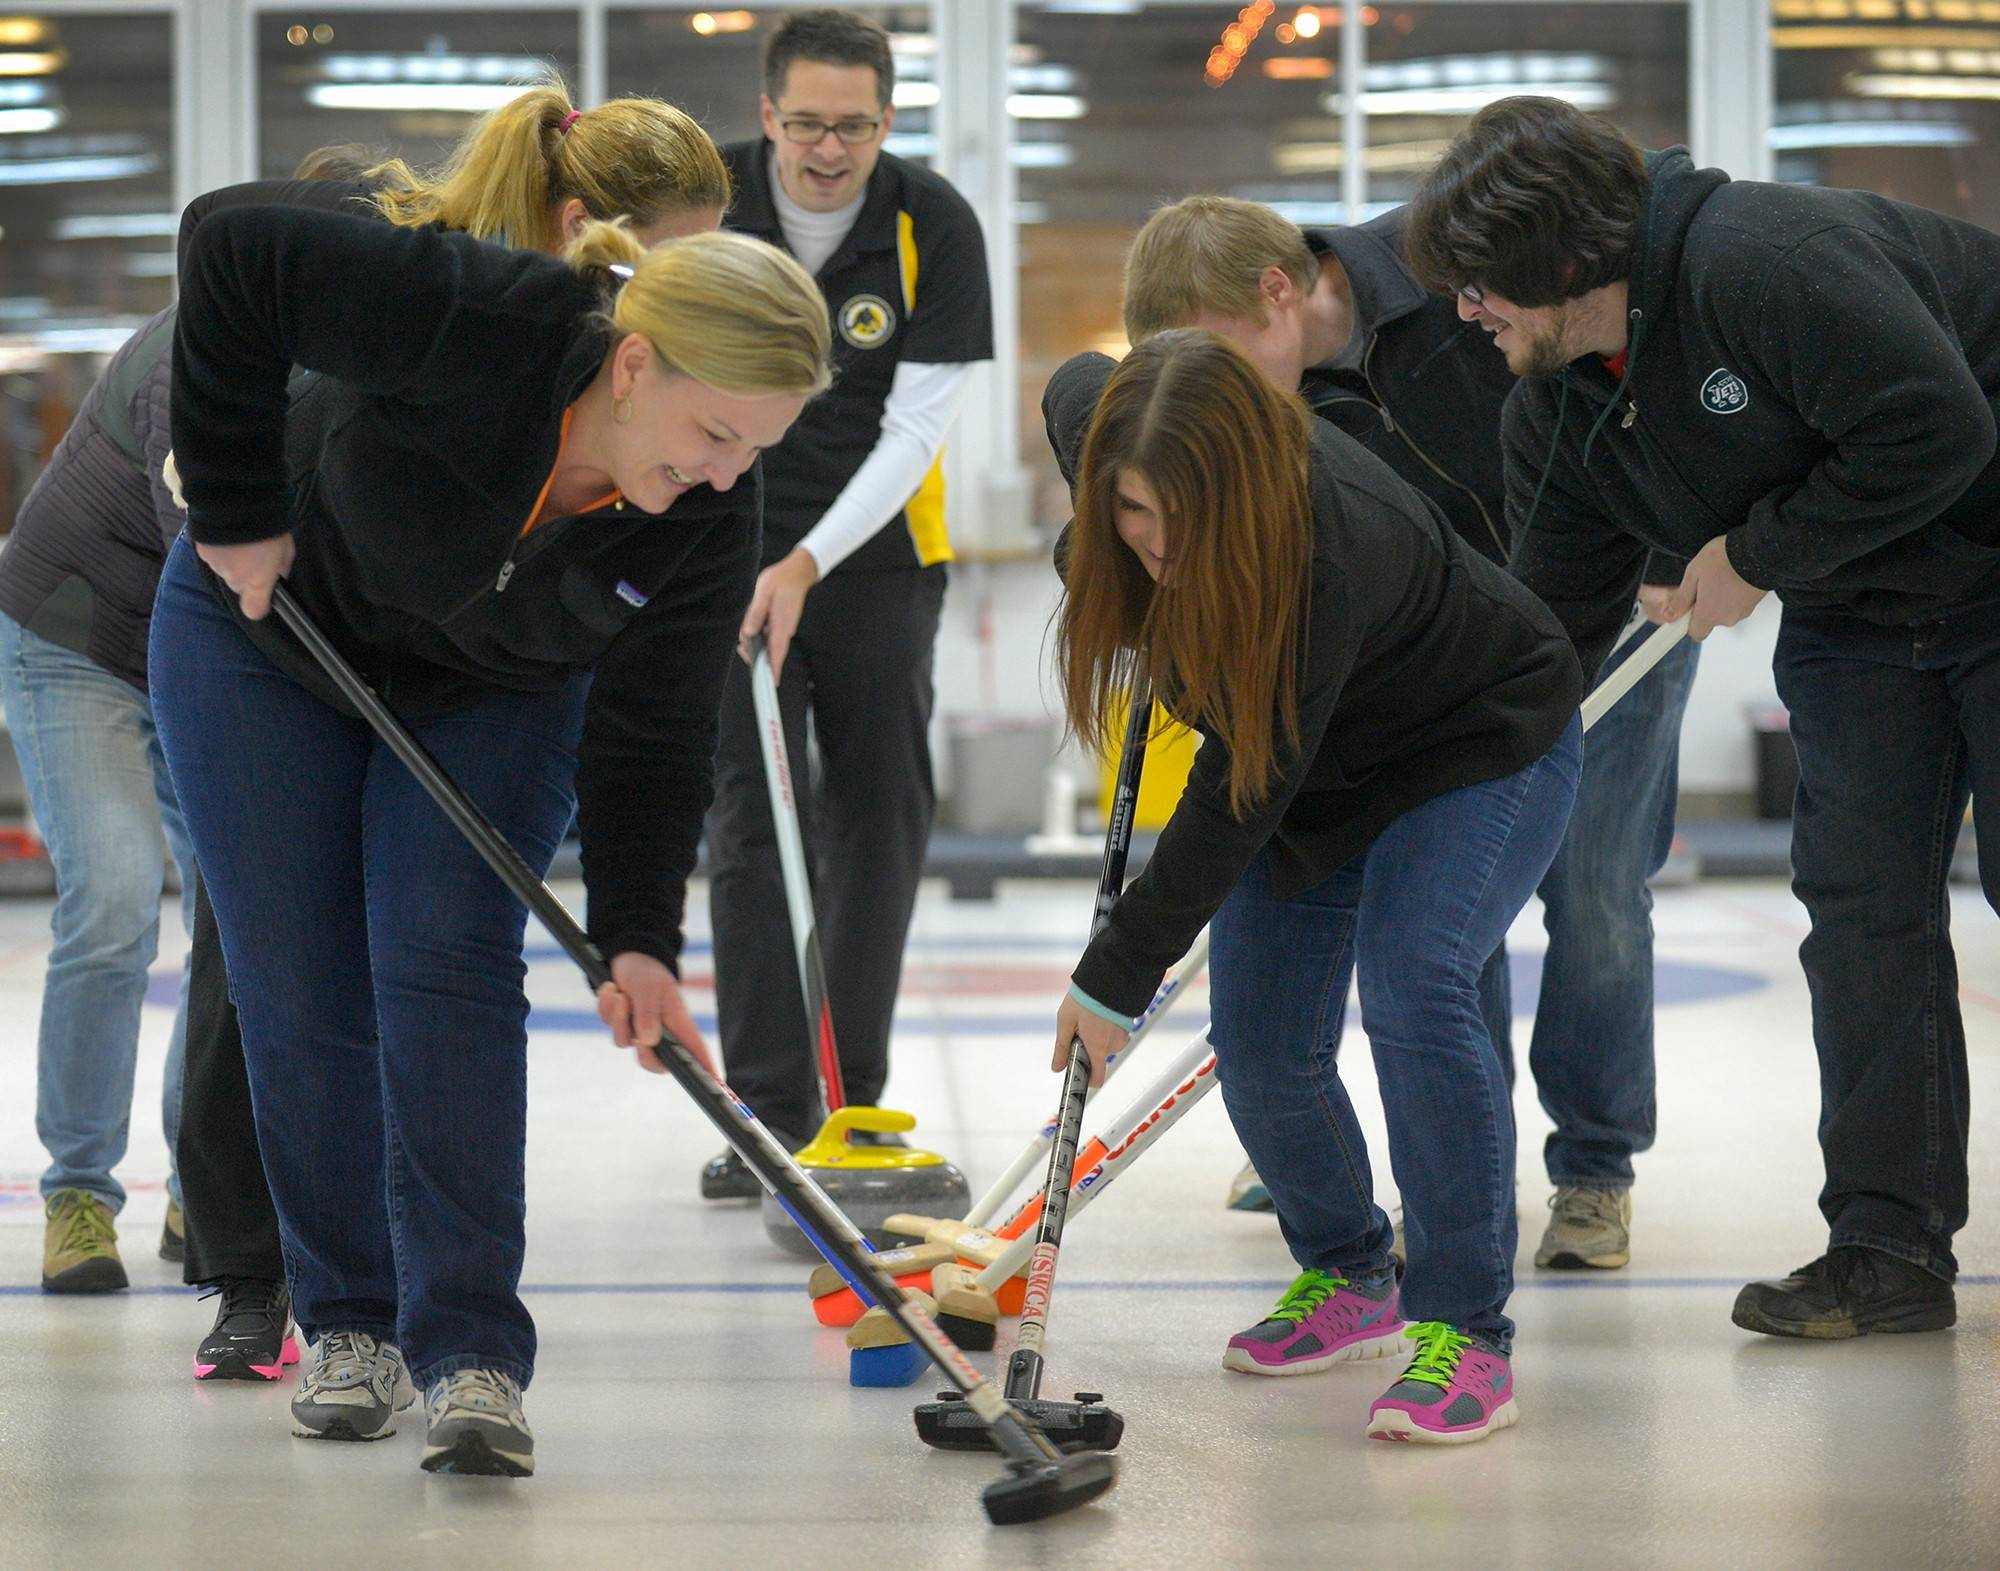 Potomac Curling Club member Todd Humora, rear, directs a group of sweeping novices at the National Capital Curling Center in Laurel, Md.